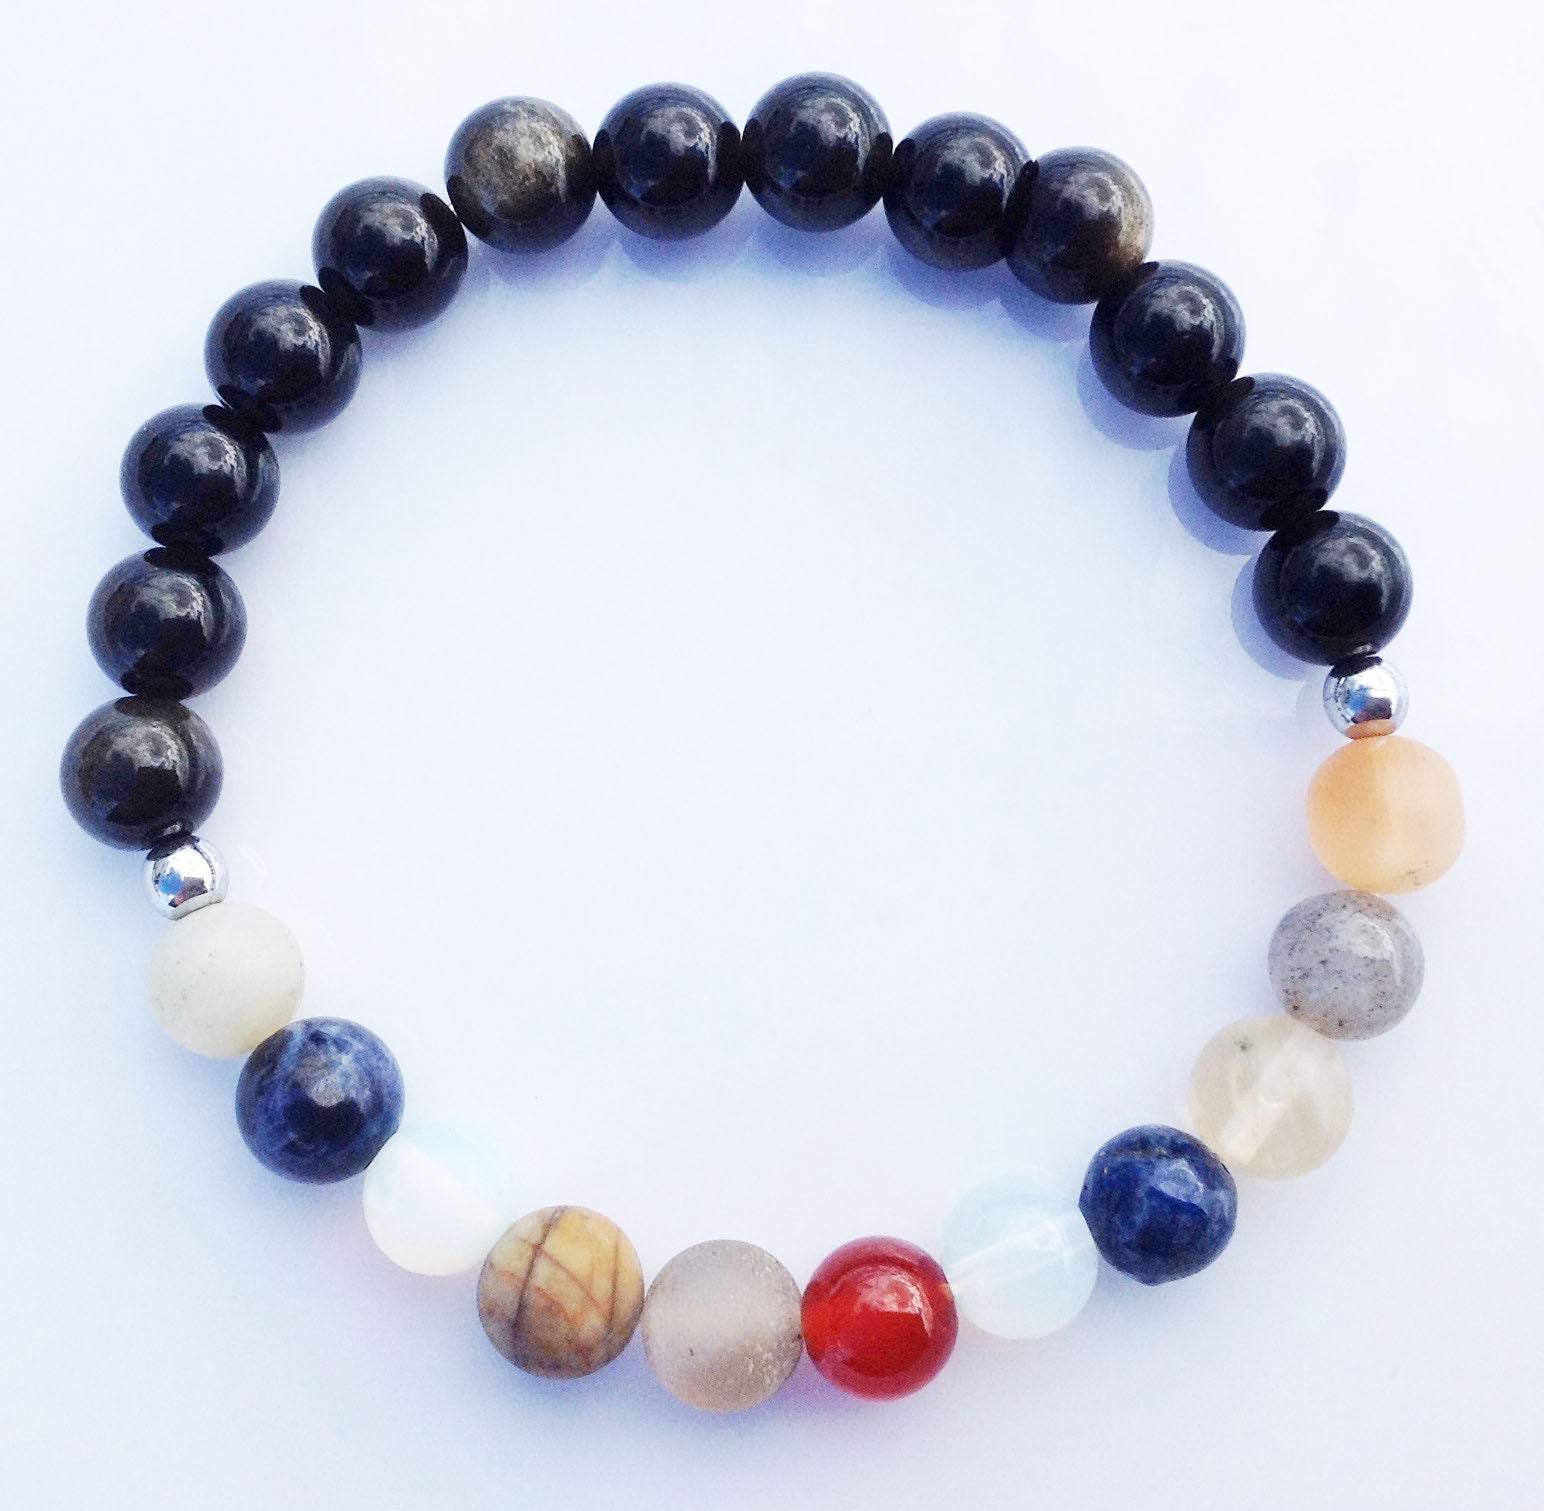 Galaxy Collection Planet Universe Obsidian and 925 Silver Yoga Meditation Wrist Mala Bracelet Root Base Chakra Focus Healing Energy Reiki